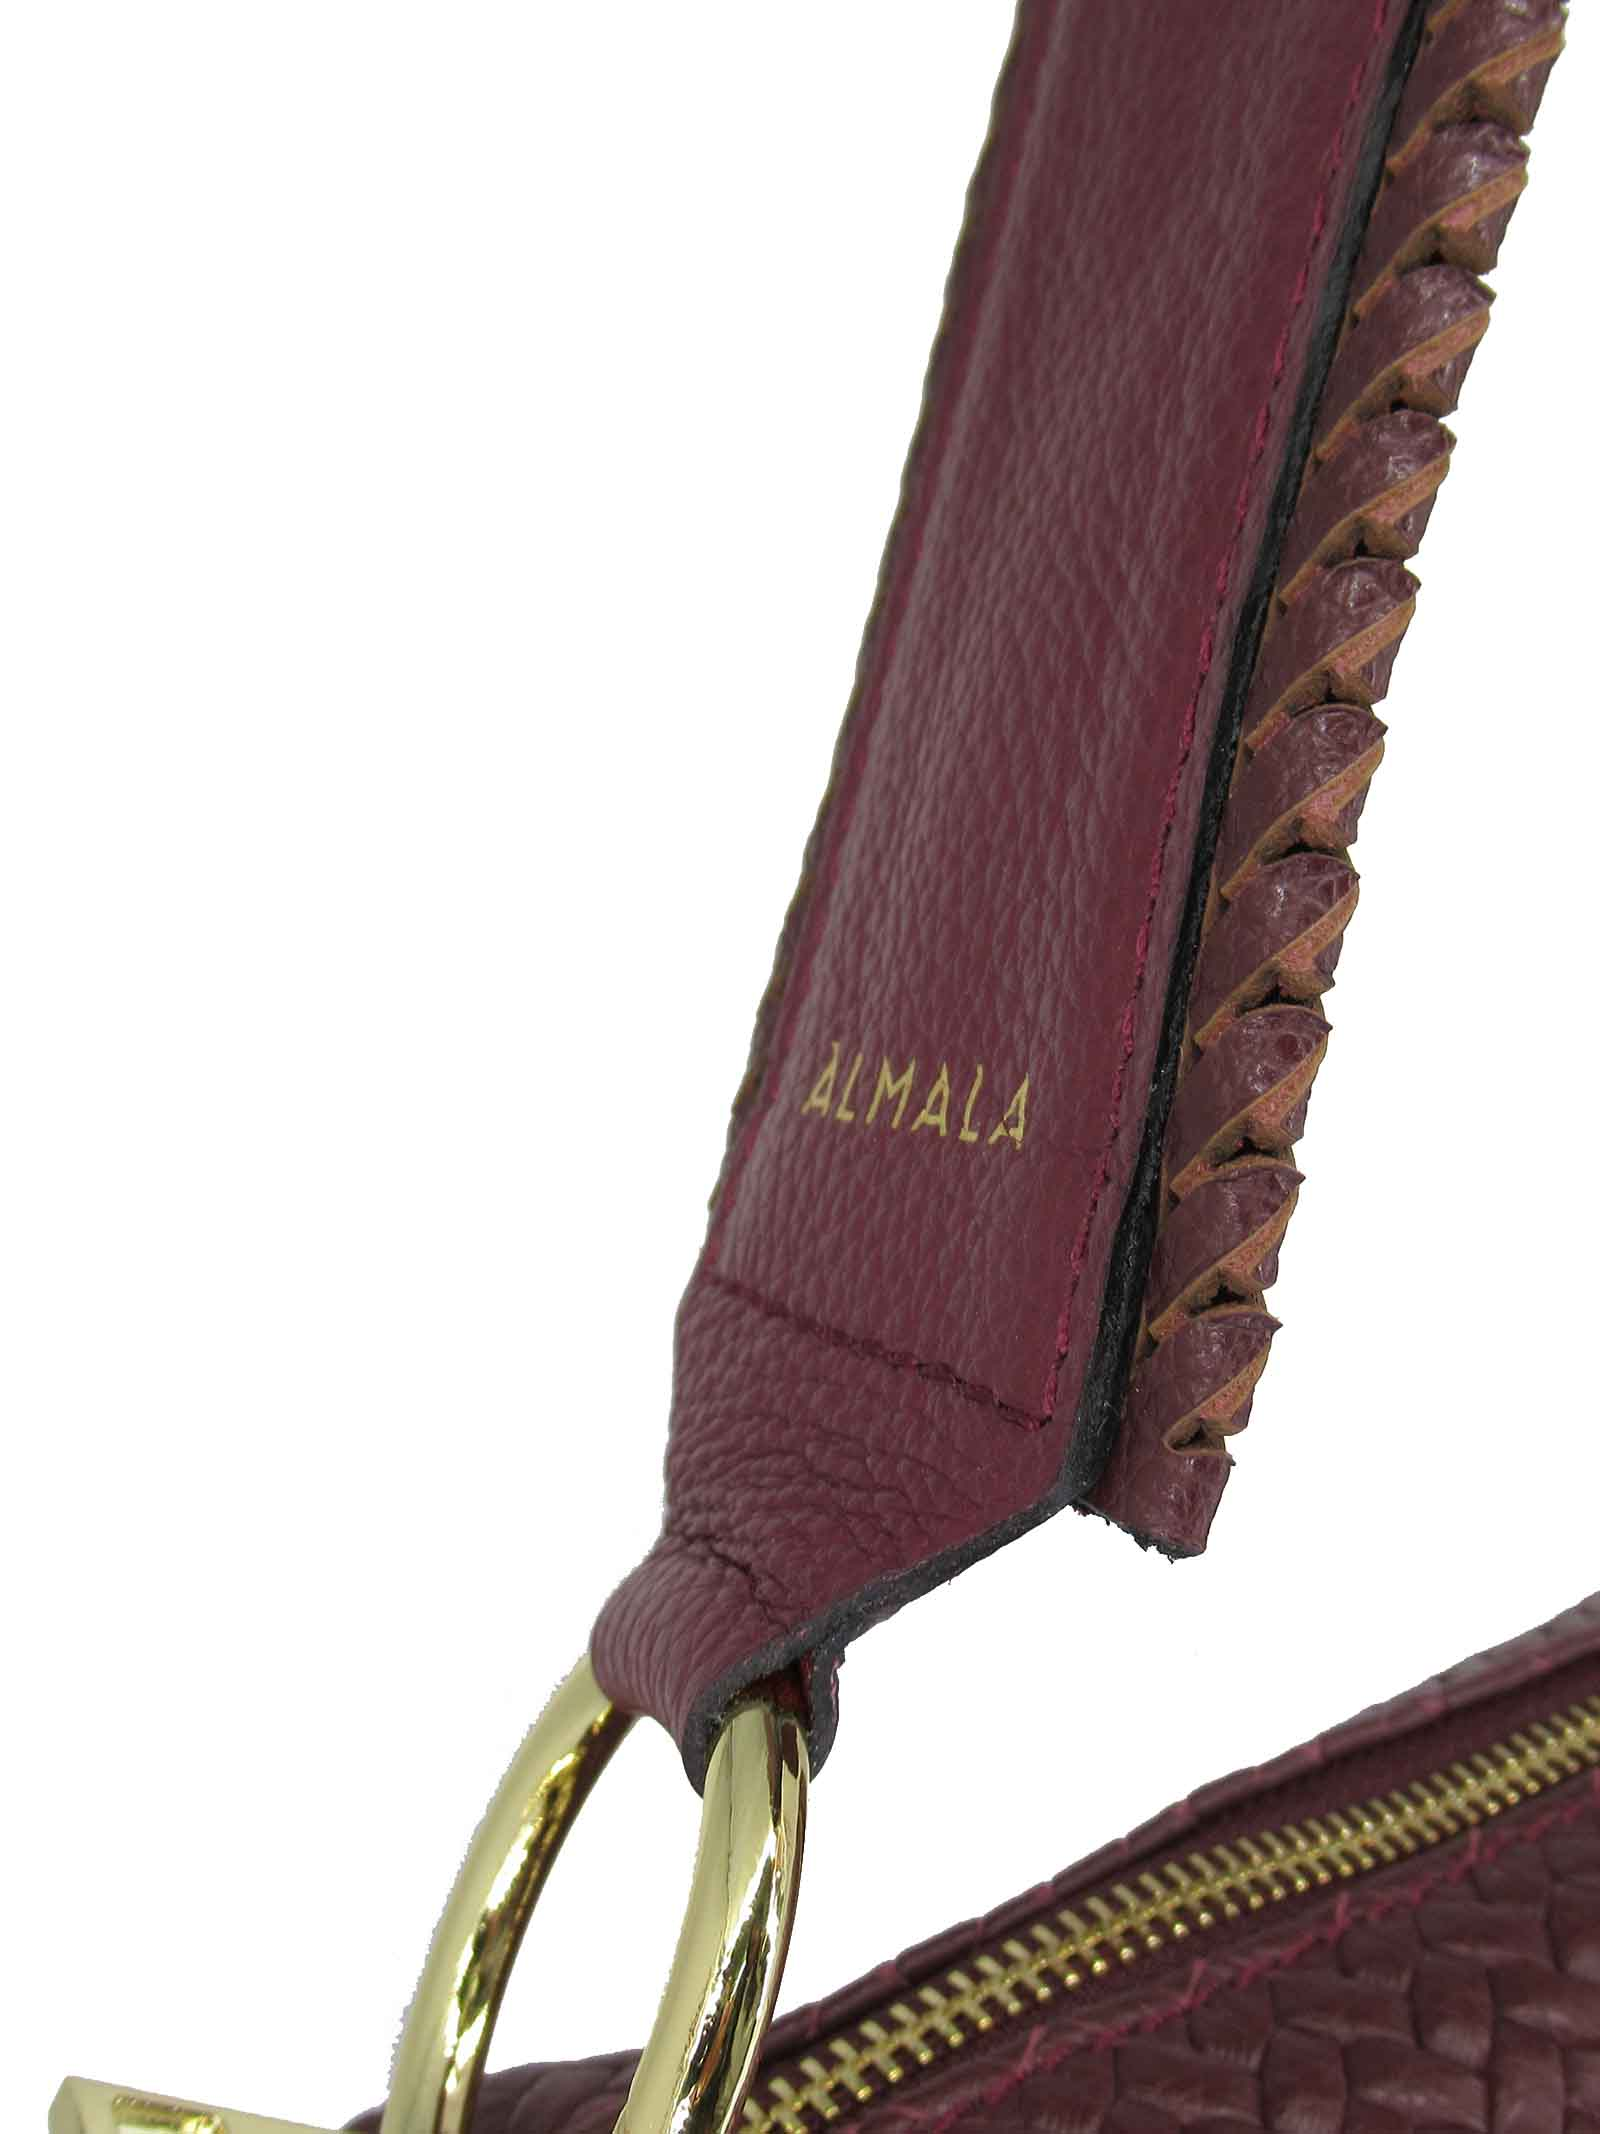 Women's Shoulder Bag Carolina in Bordeaux Braided Leather with Leather Shoulder Strap cce051a0021 Almala | Bags and backpacks | CAROLINA018